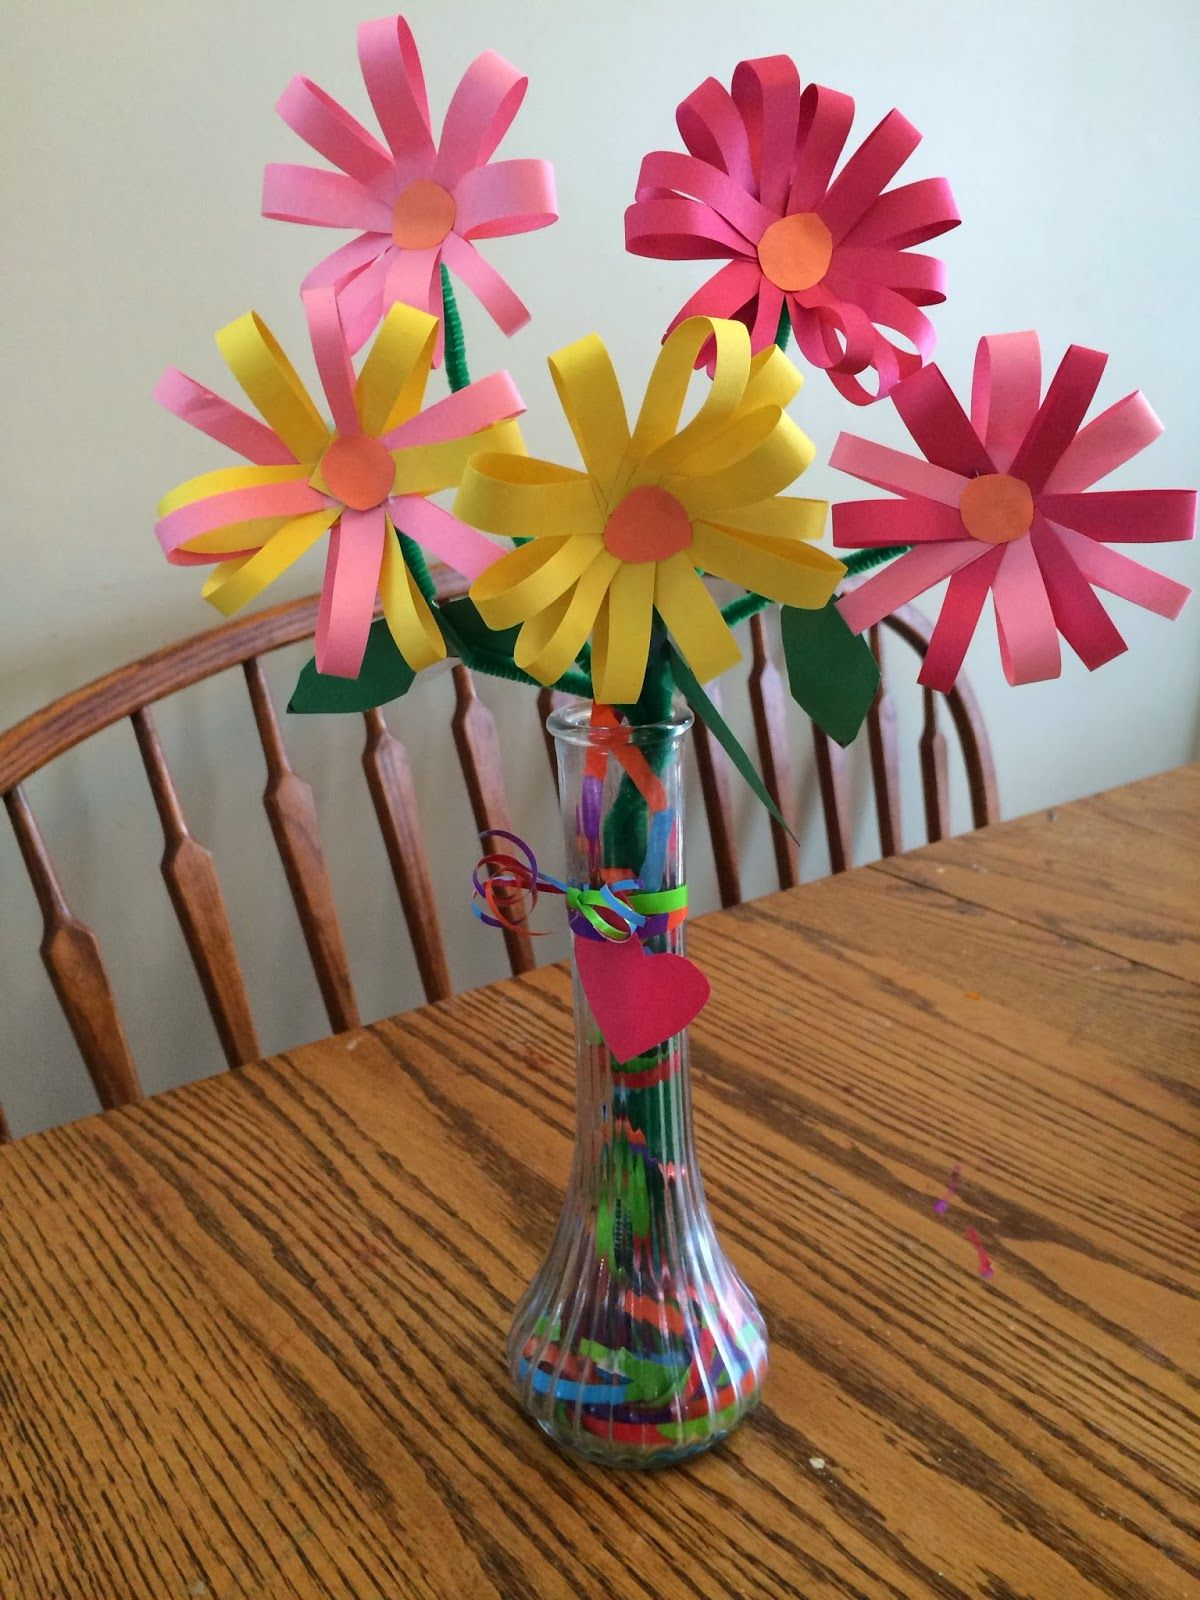 Pin by Kathy Willoughby on Do it yourself | Pinterest | Crafts ... Flower Vase In Paper on paper flowers in water, paper flowers from newspaper, paper flowers in art, paper flowers calla lily, paper iris, paper flowers in bucket, paper flowers in wedding, paper flowers in bedroom, paper flowers flowers, paper flowers rose, paper flowers in frame, paper chocolate, paper flowers corsages, paper flowers bouquets, paper flowers bunch,